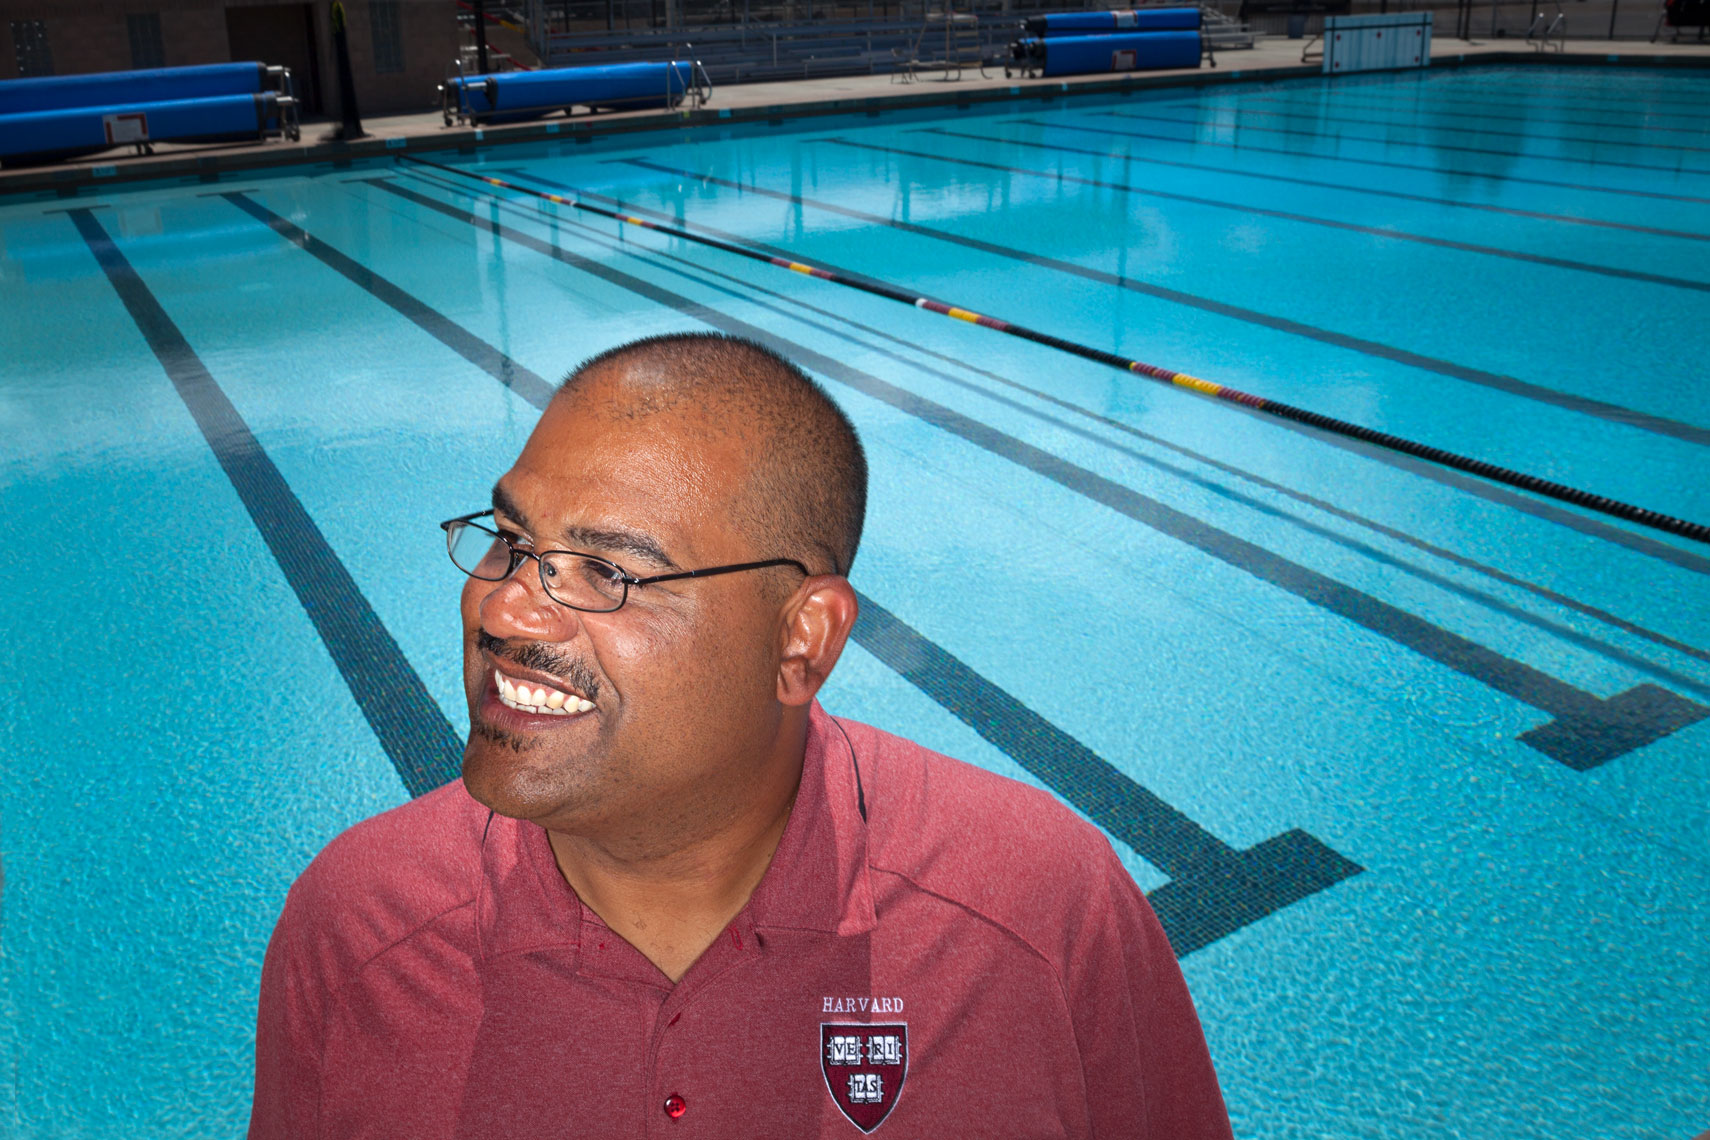 Harvard Water Polo Coach Ted Minnis